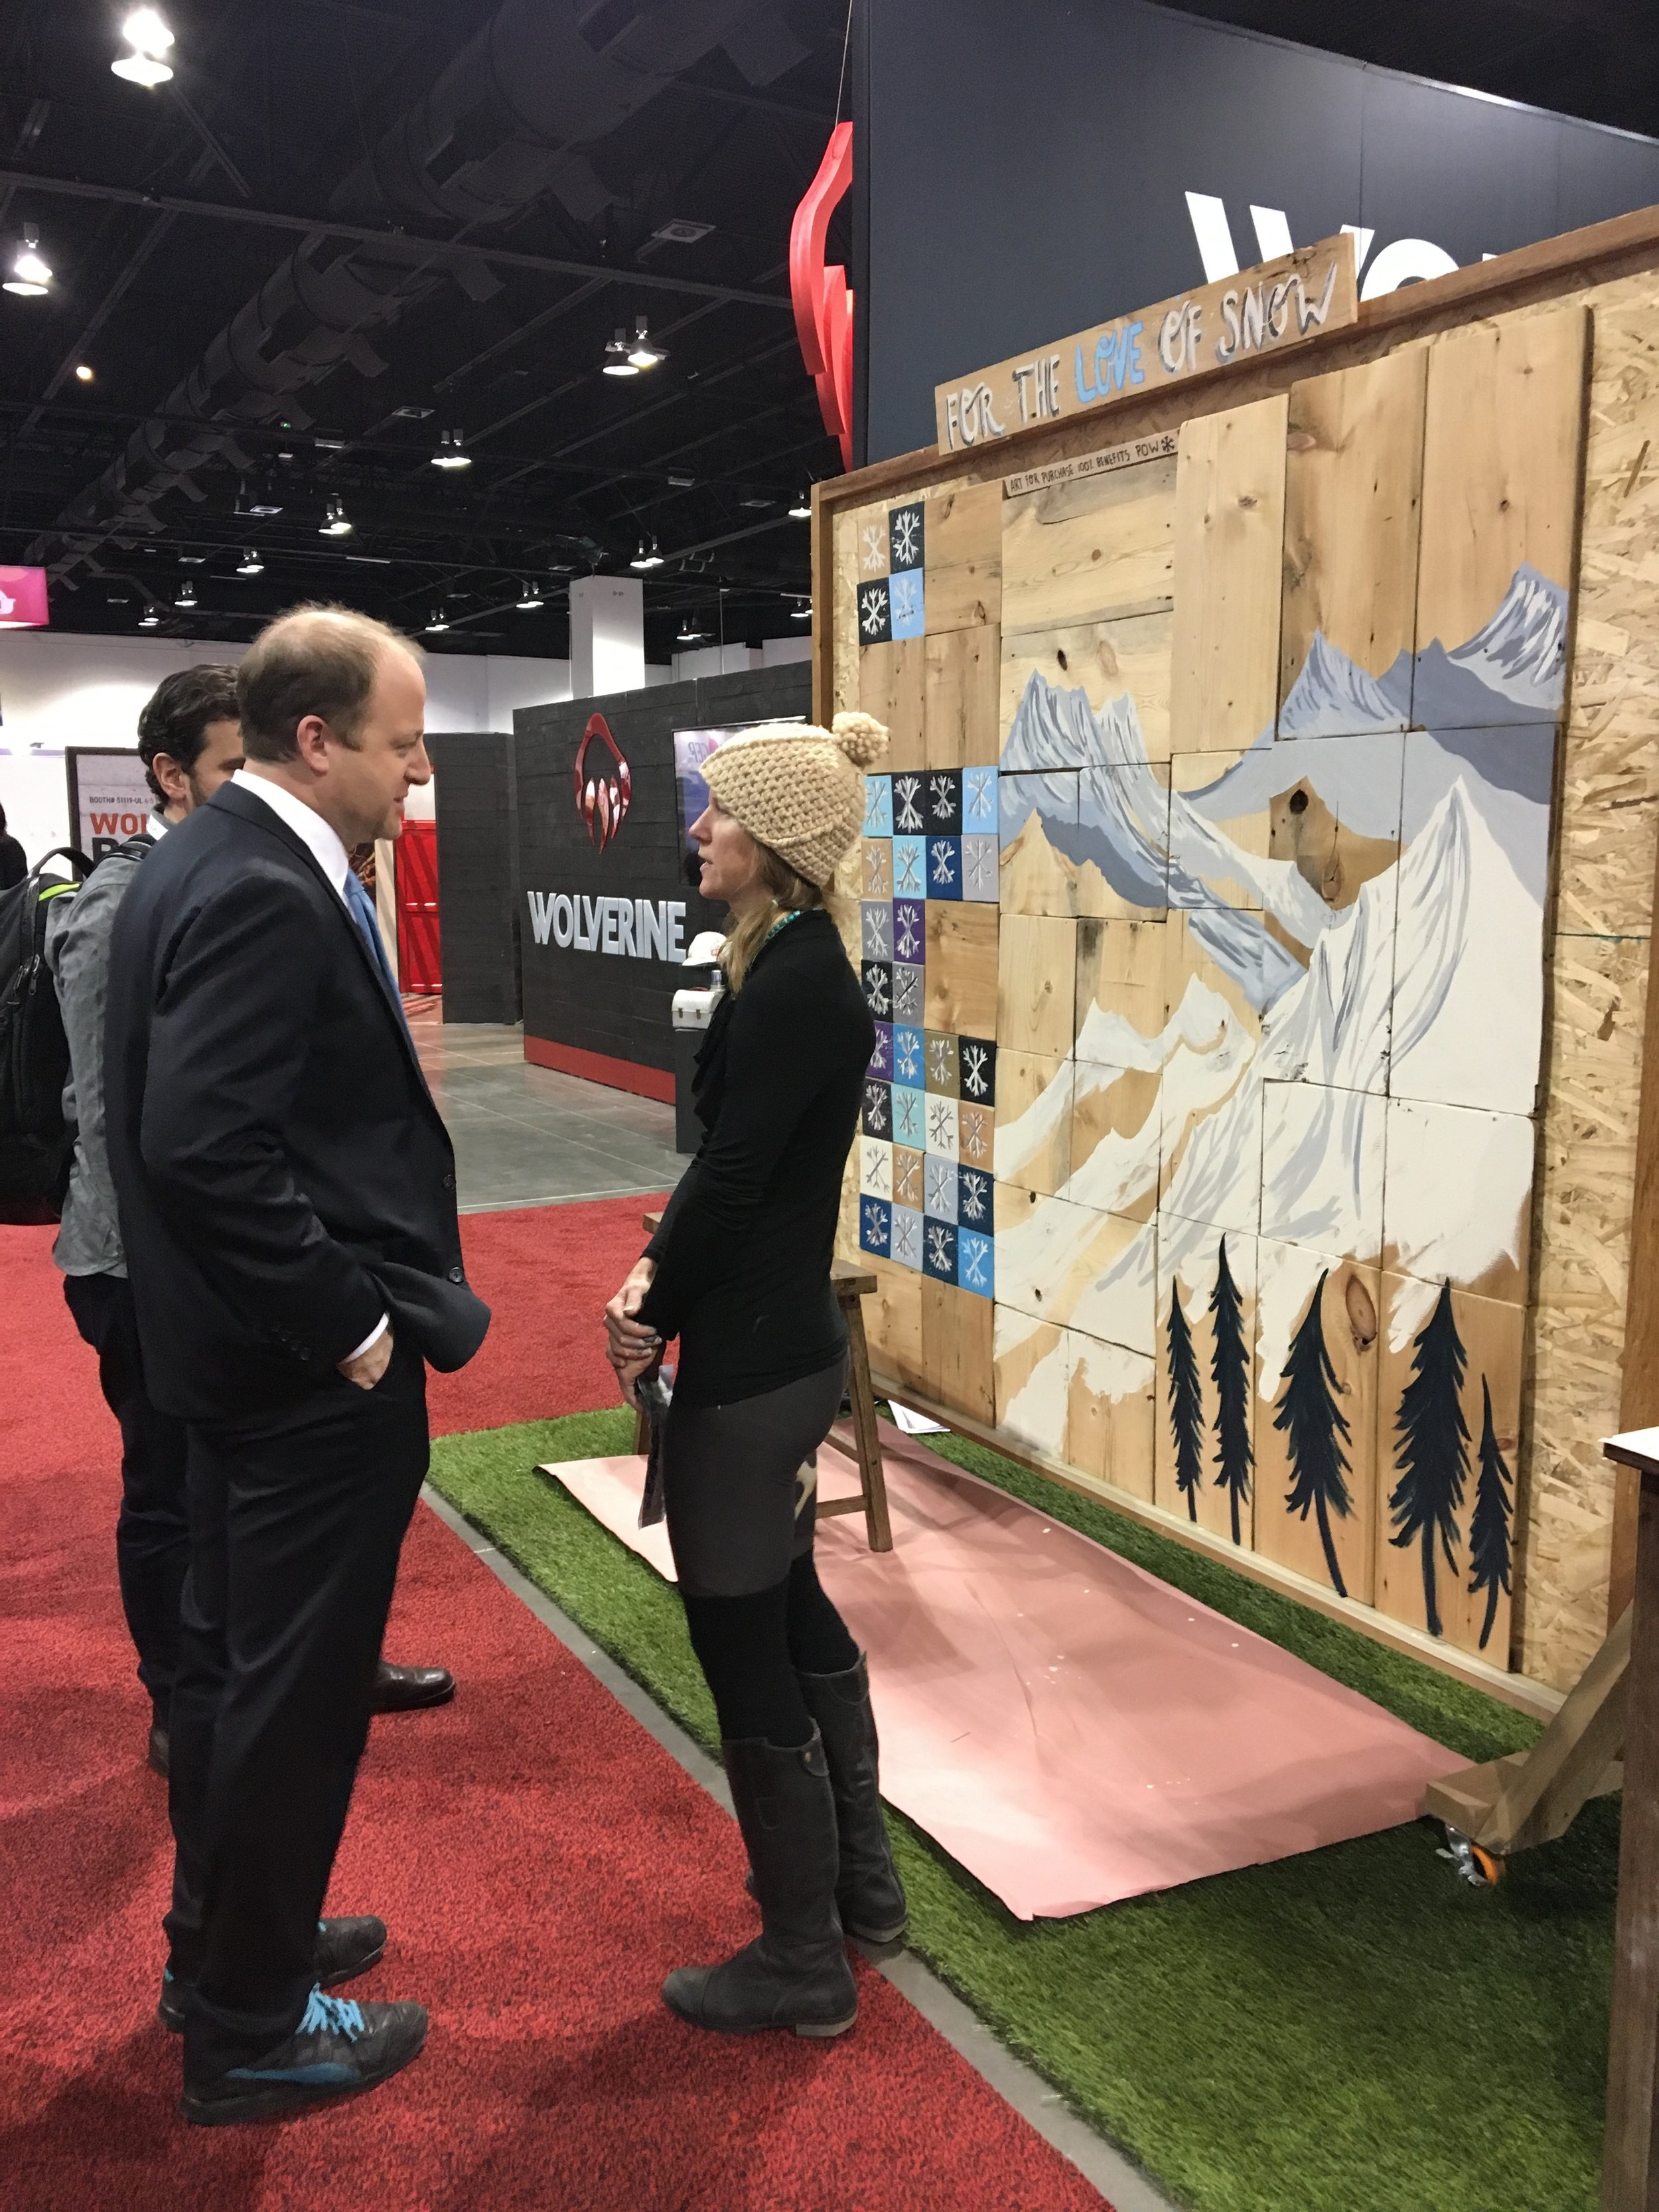 Colorado Governor Jared Polis stops by to learn about the mural and the work POW is doing at Outdoor Retailer